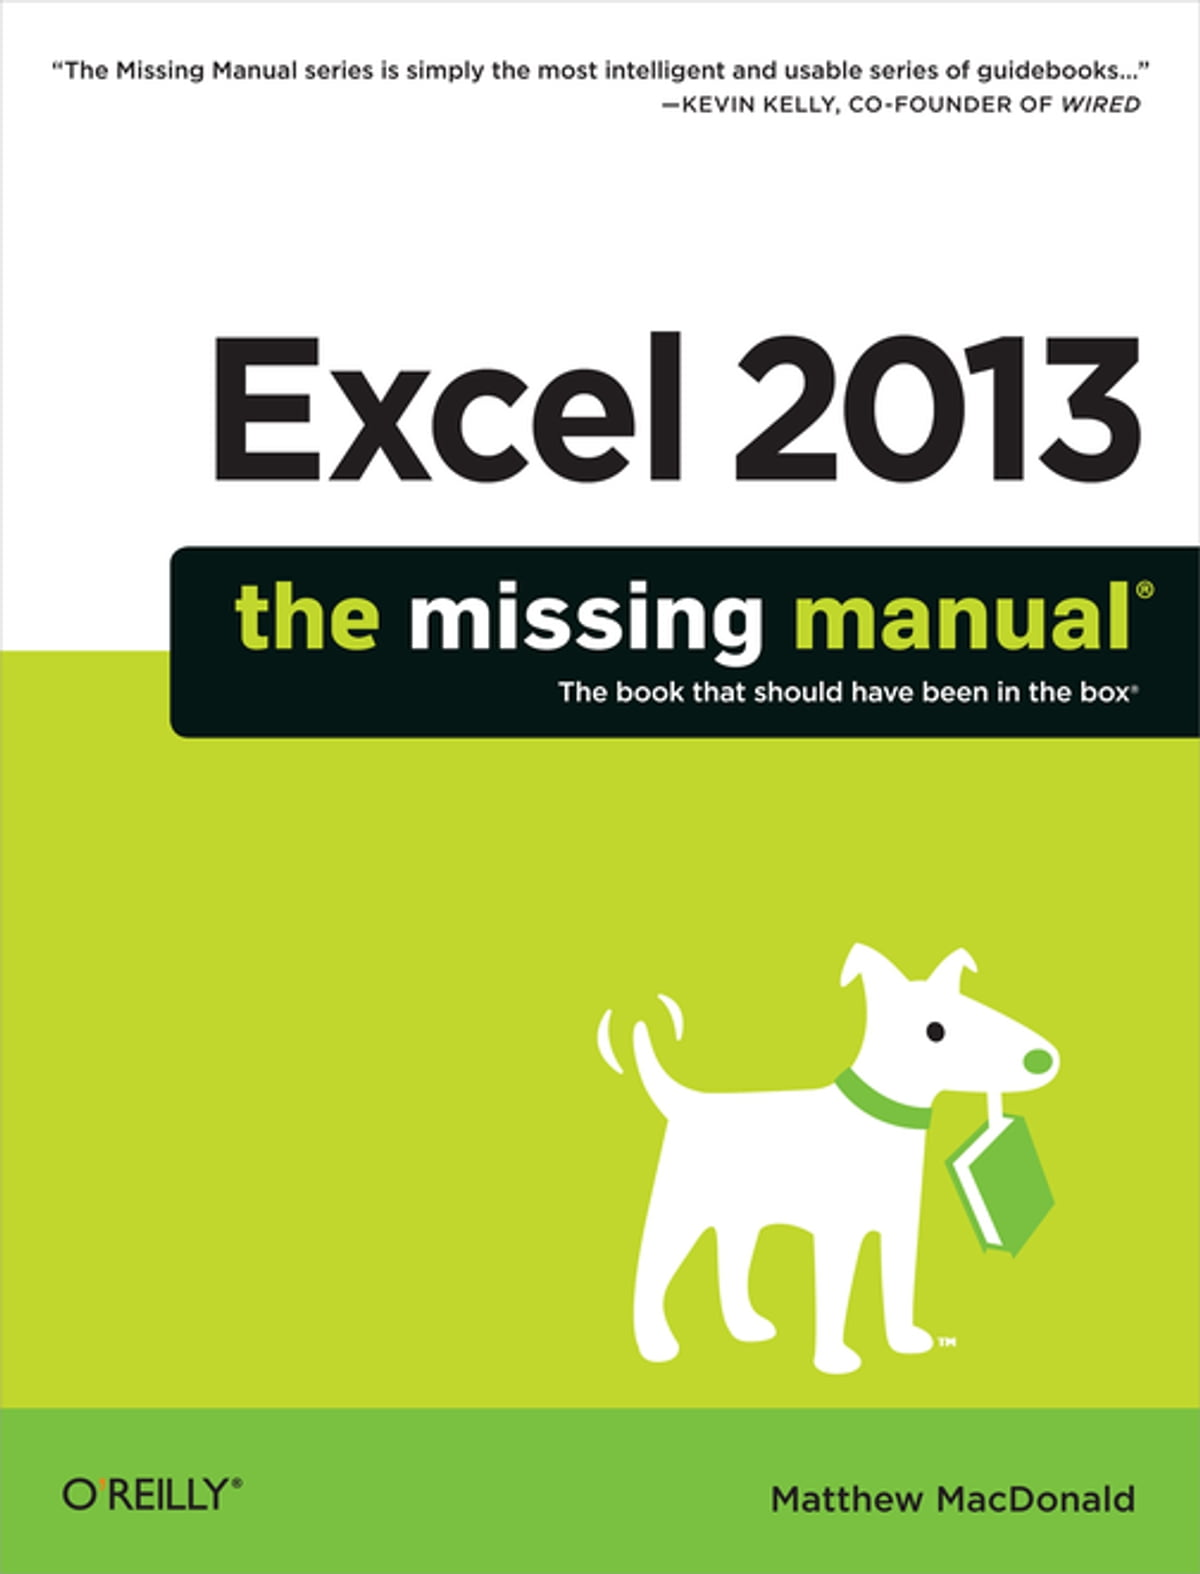 Excel 2013: The Missing Manual eBook by Matthew MacDonald ...